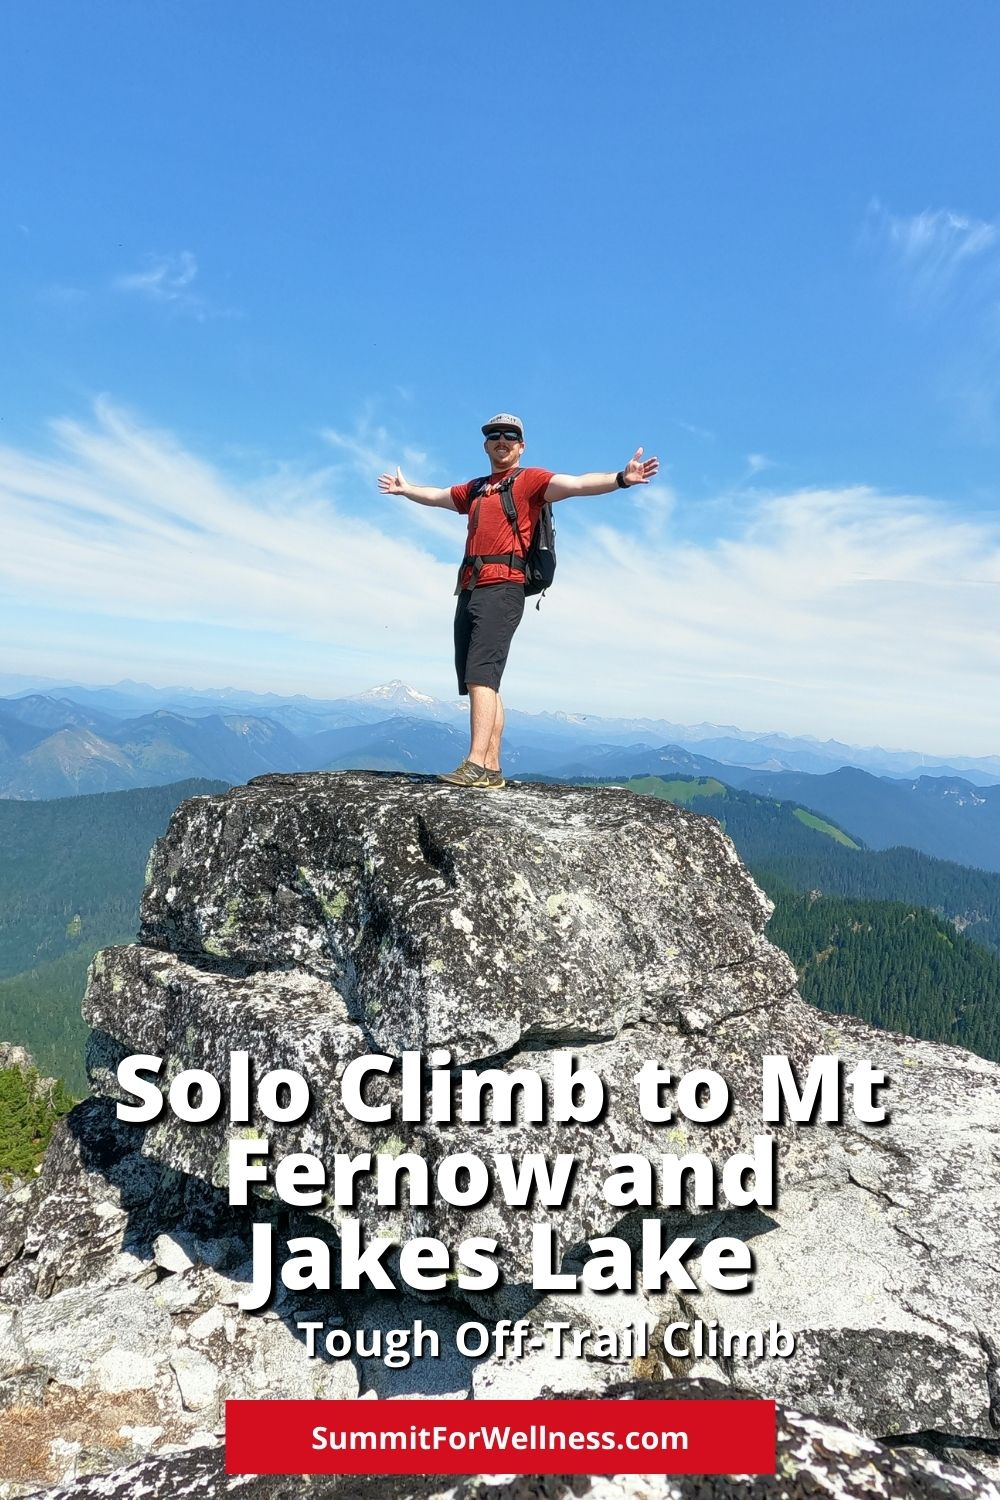 Climb to the top of Mt Fernow via the Jakes Lake route